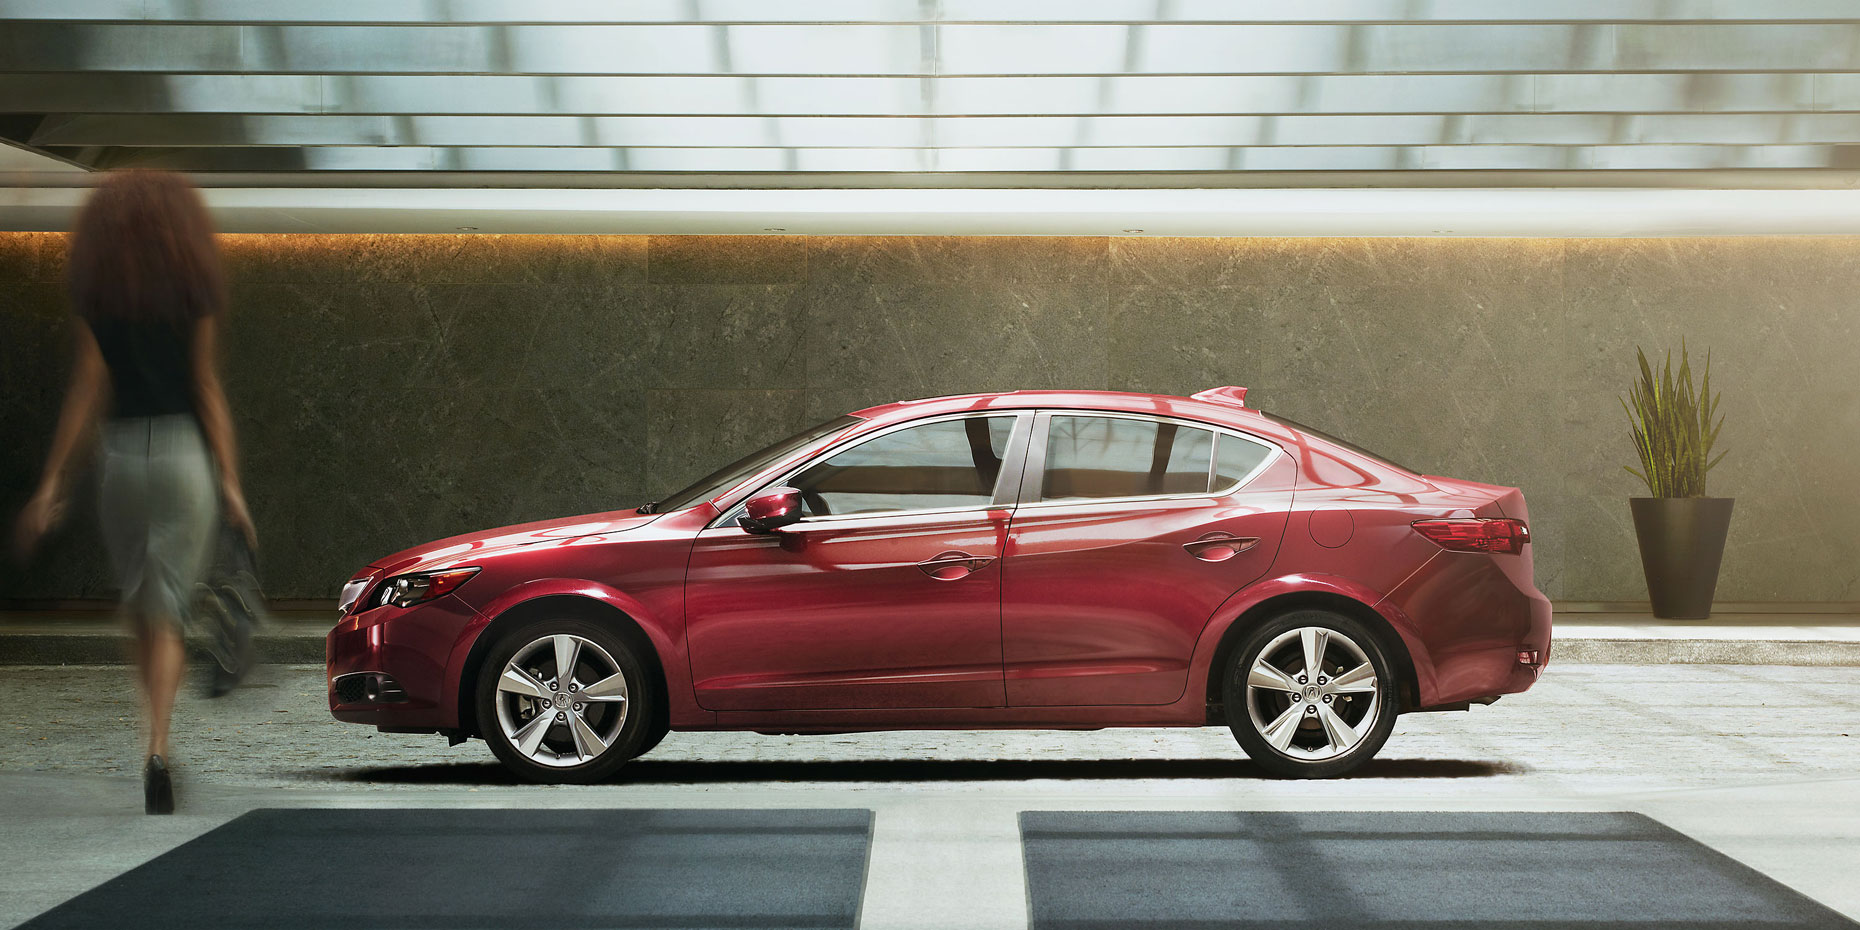 2013-ilx-exterior-6-speed-manual-with-premium-package-in-crimson-garnet-red-head-woman-9_hires.jpg